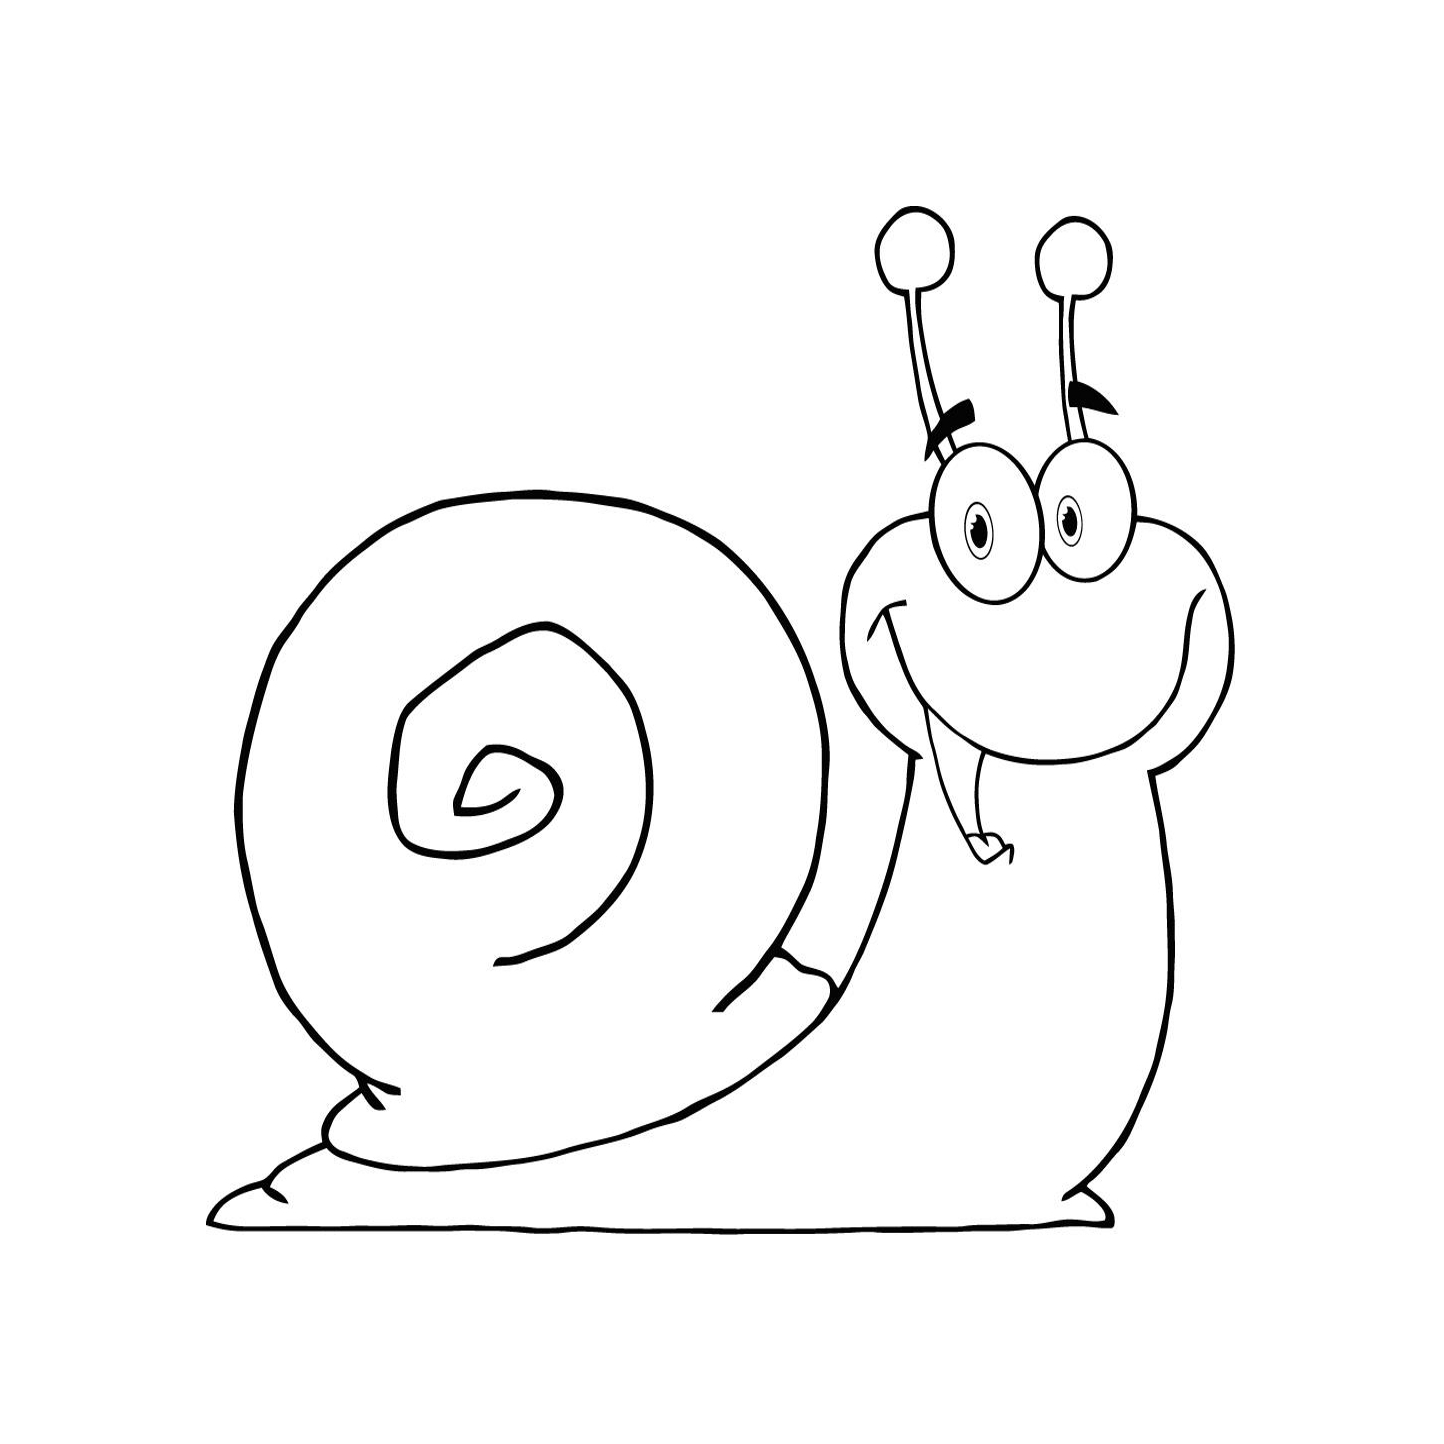 Sorj the Snail logo